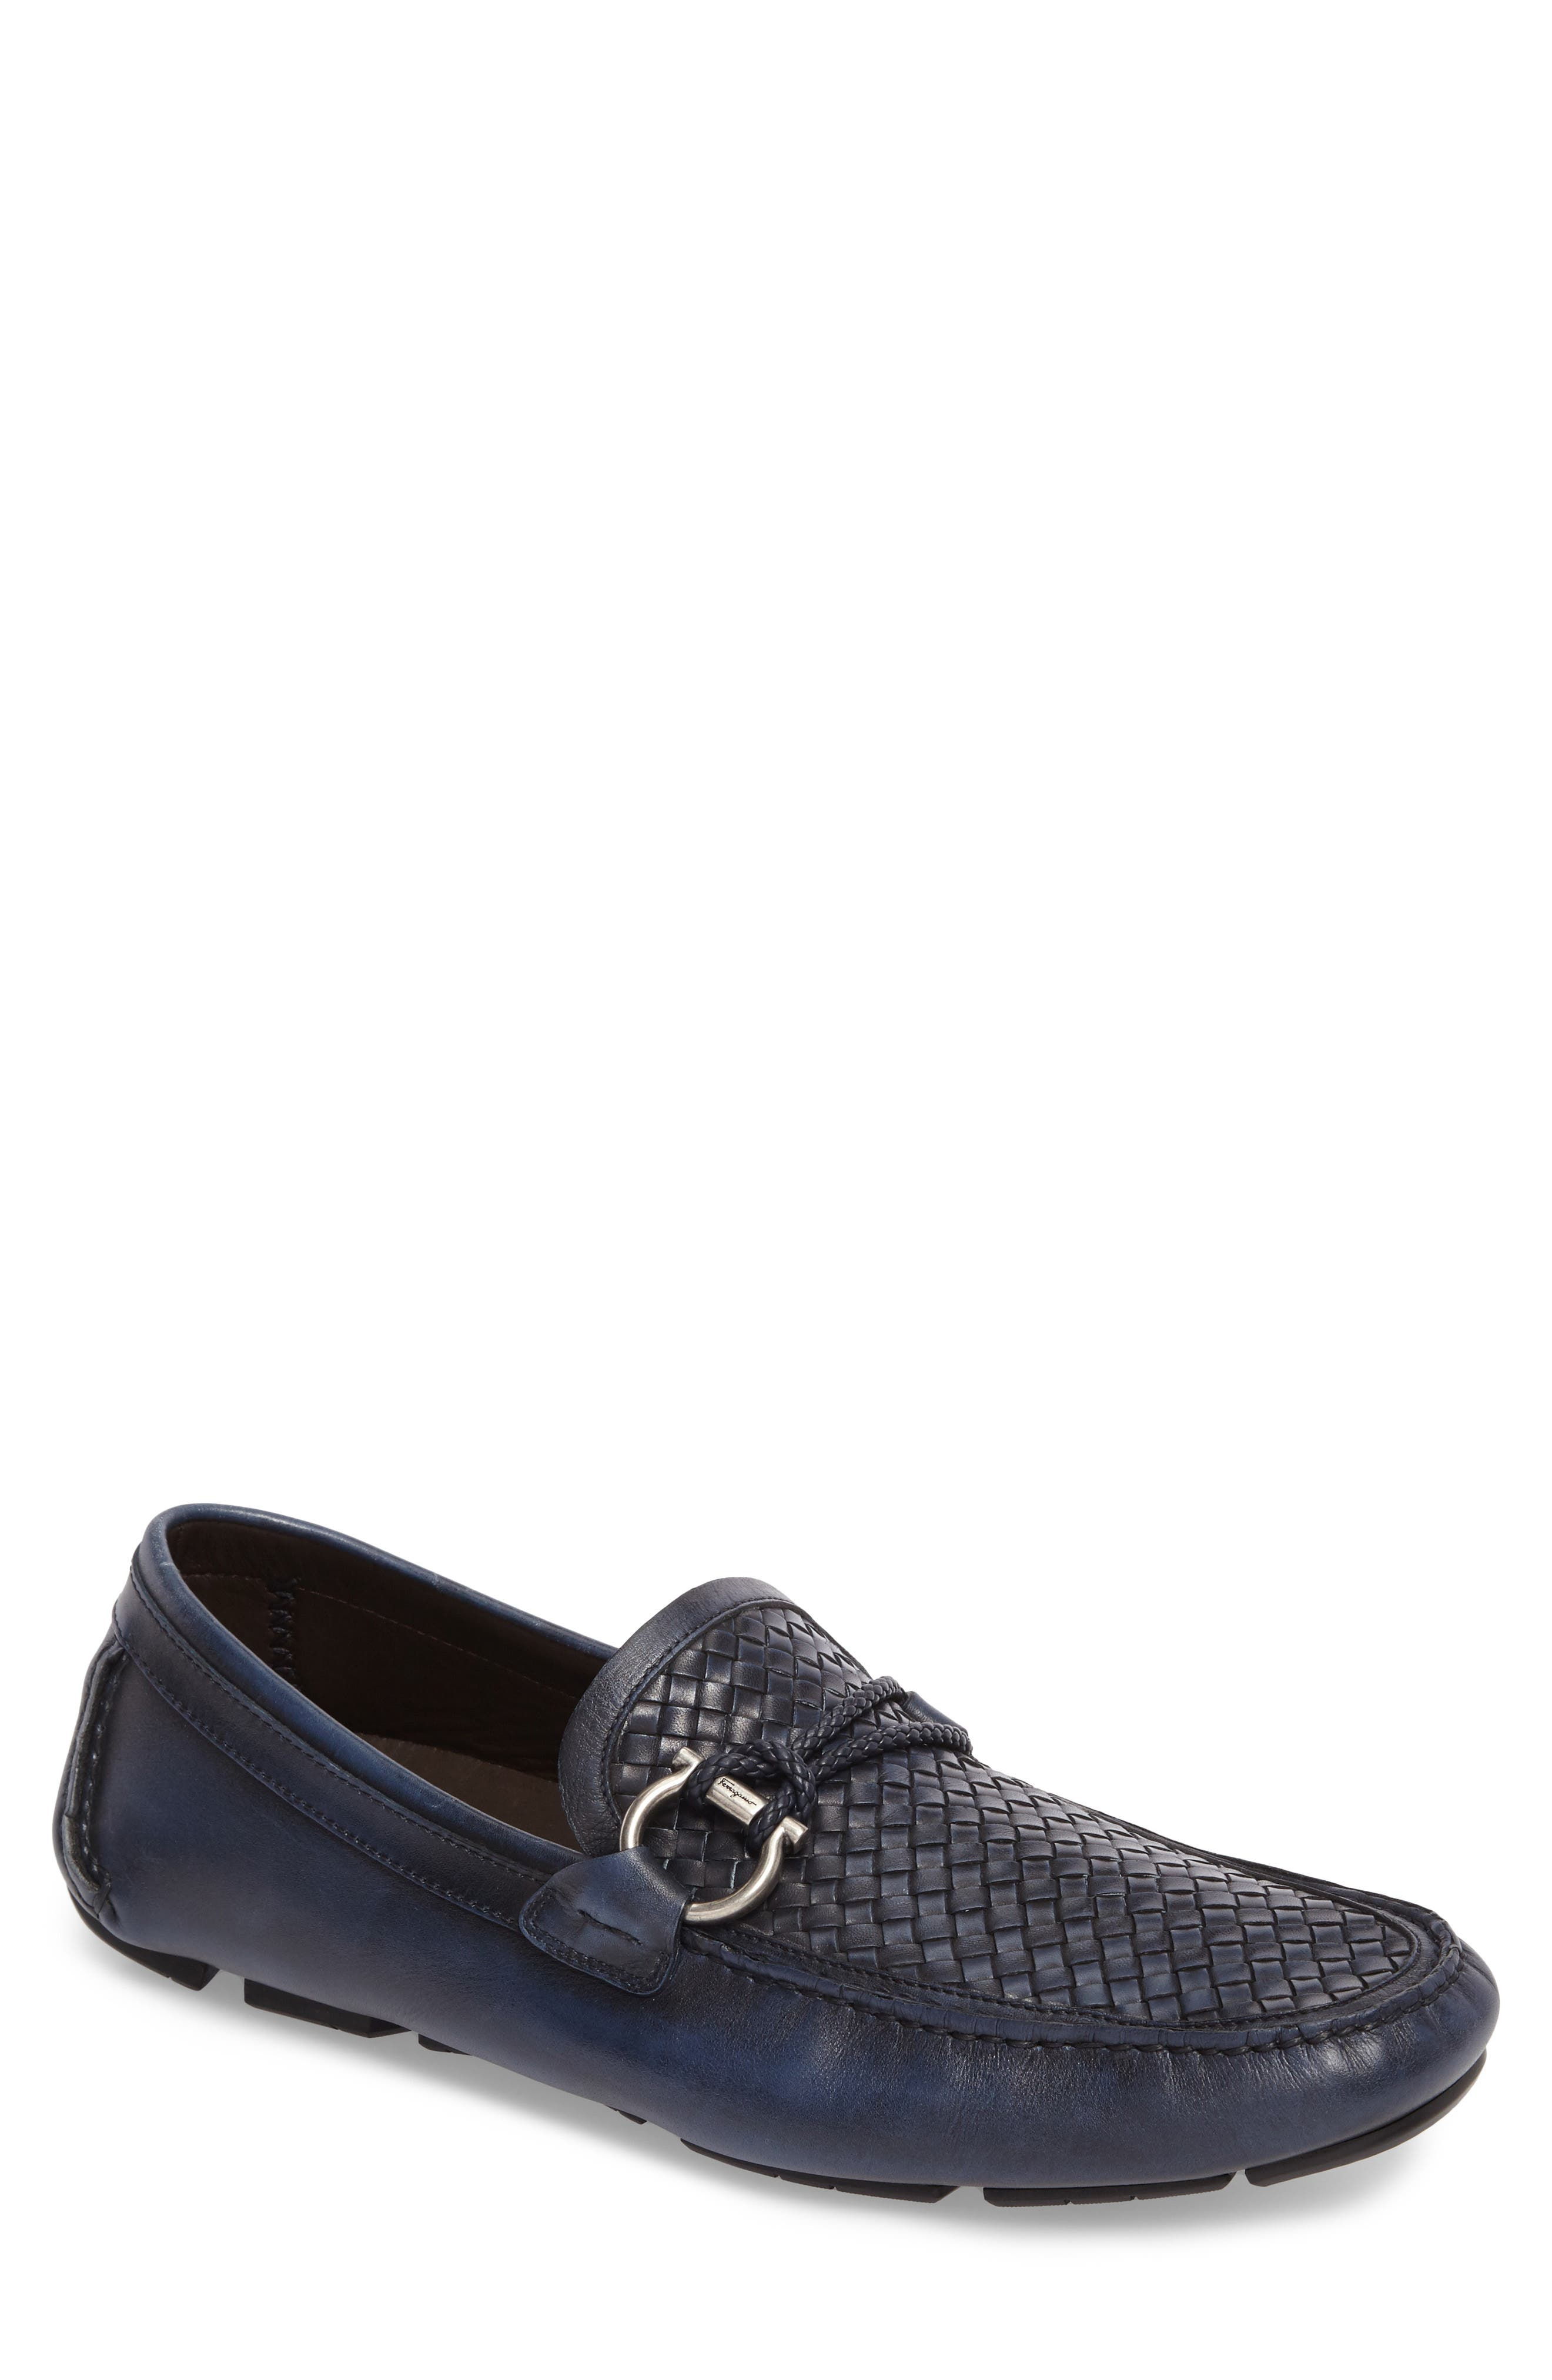 Front Driving Shoe,                         Main,                         color, Sunset Blue/ Navy